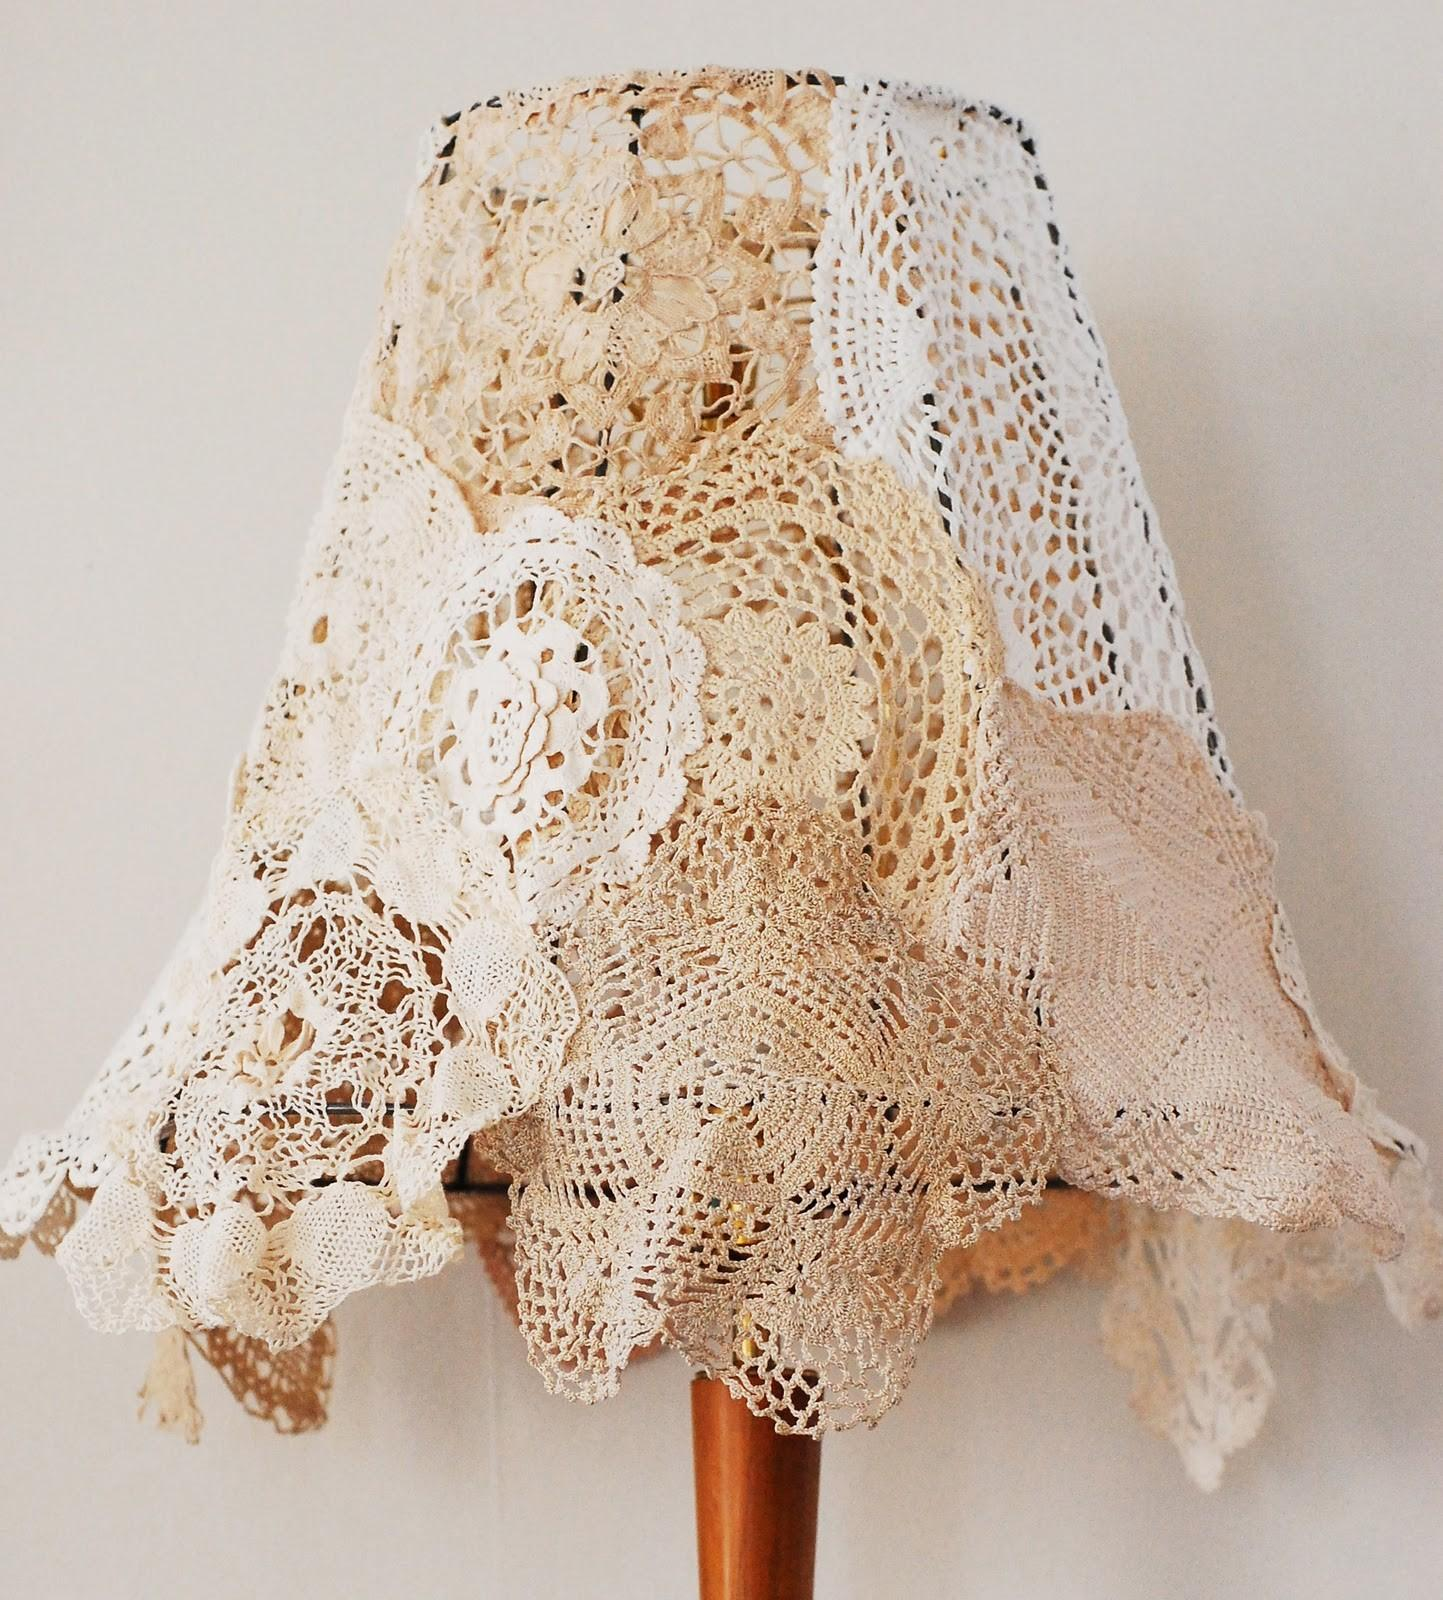 Maize Hutton Vintage Doily Lampshade Diy